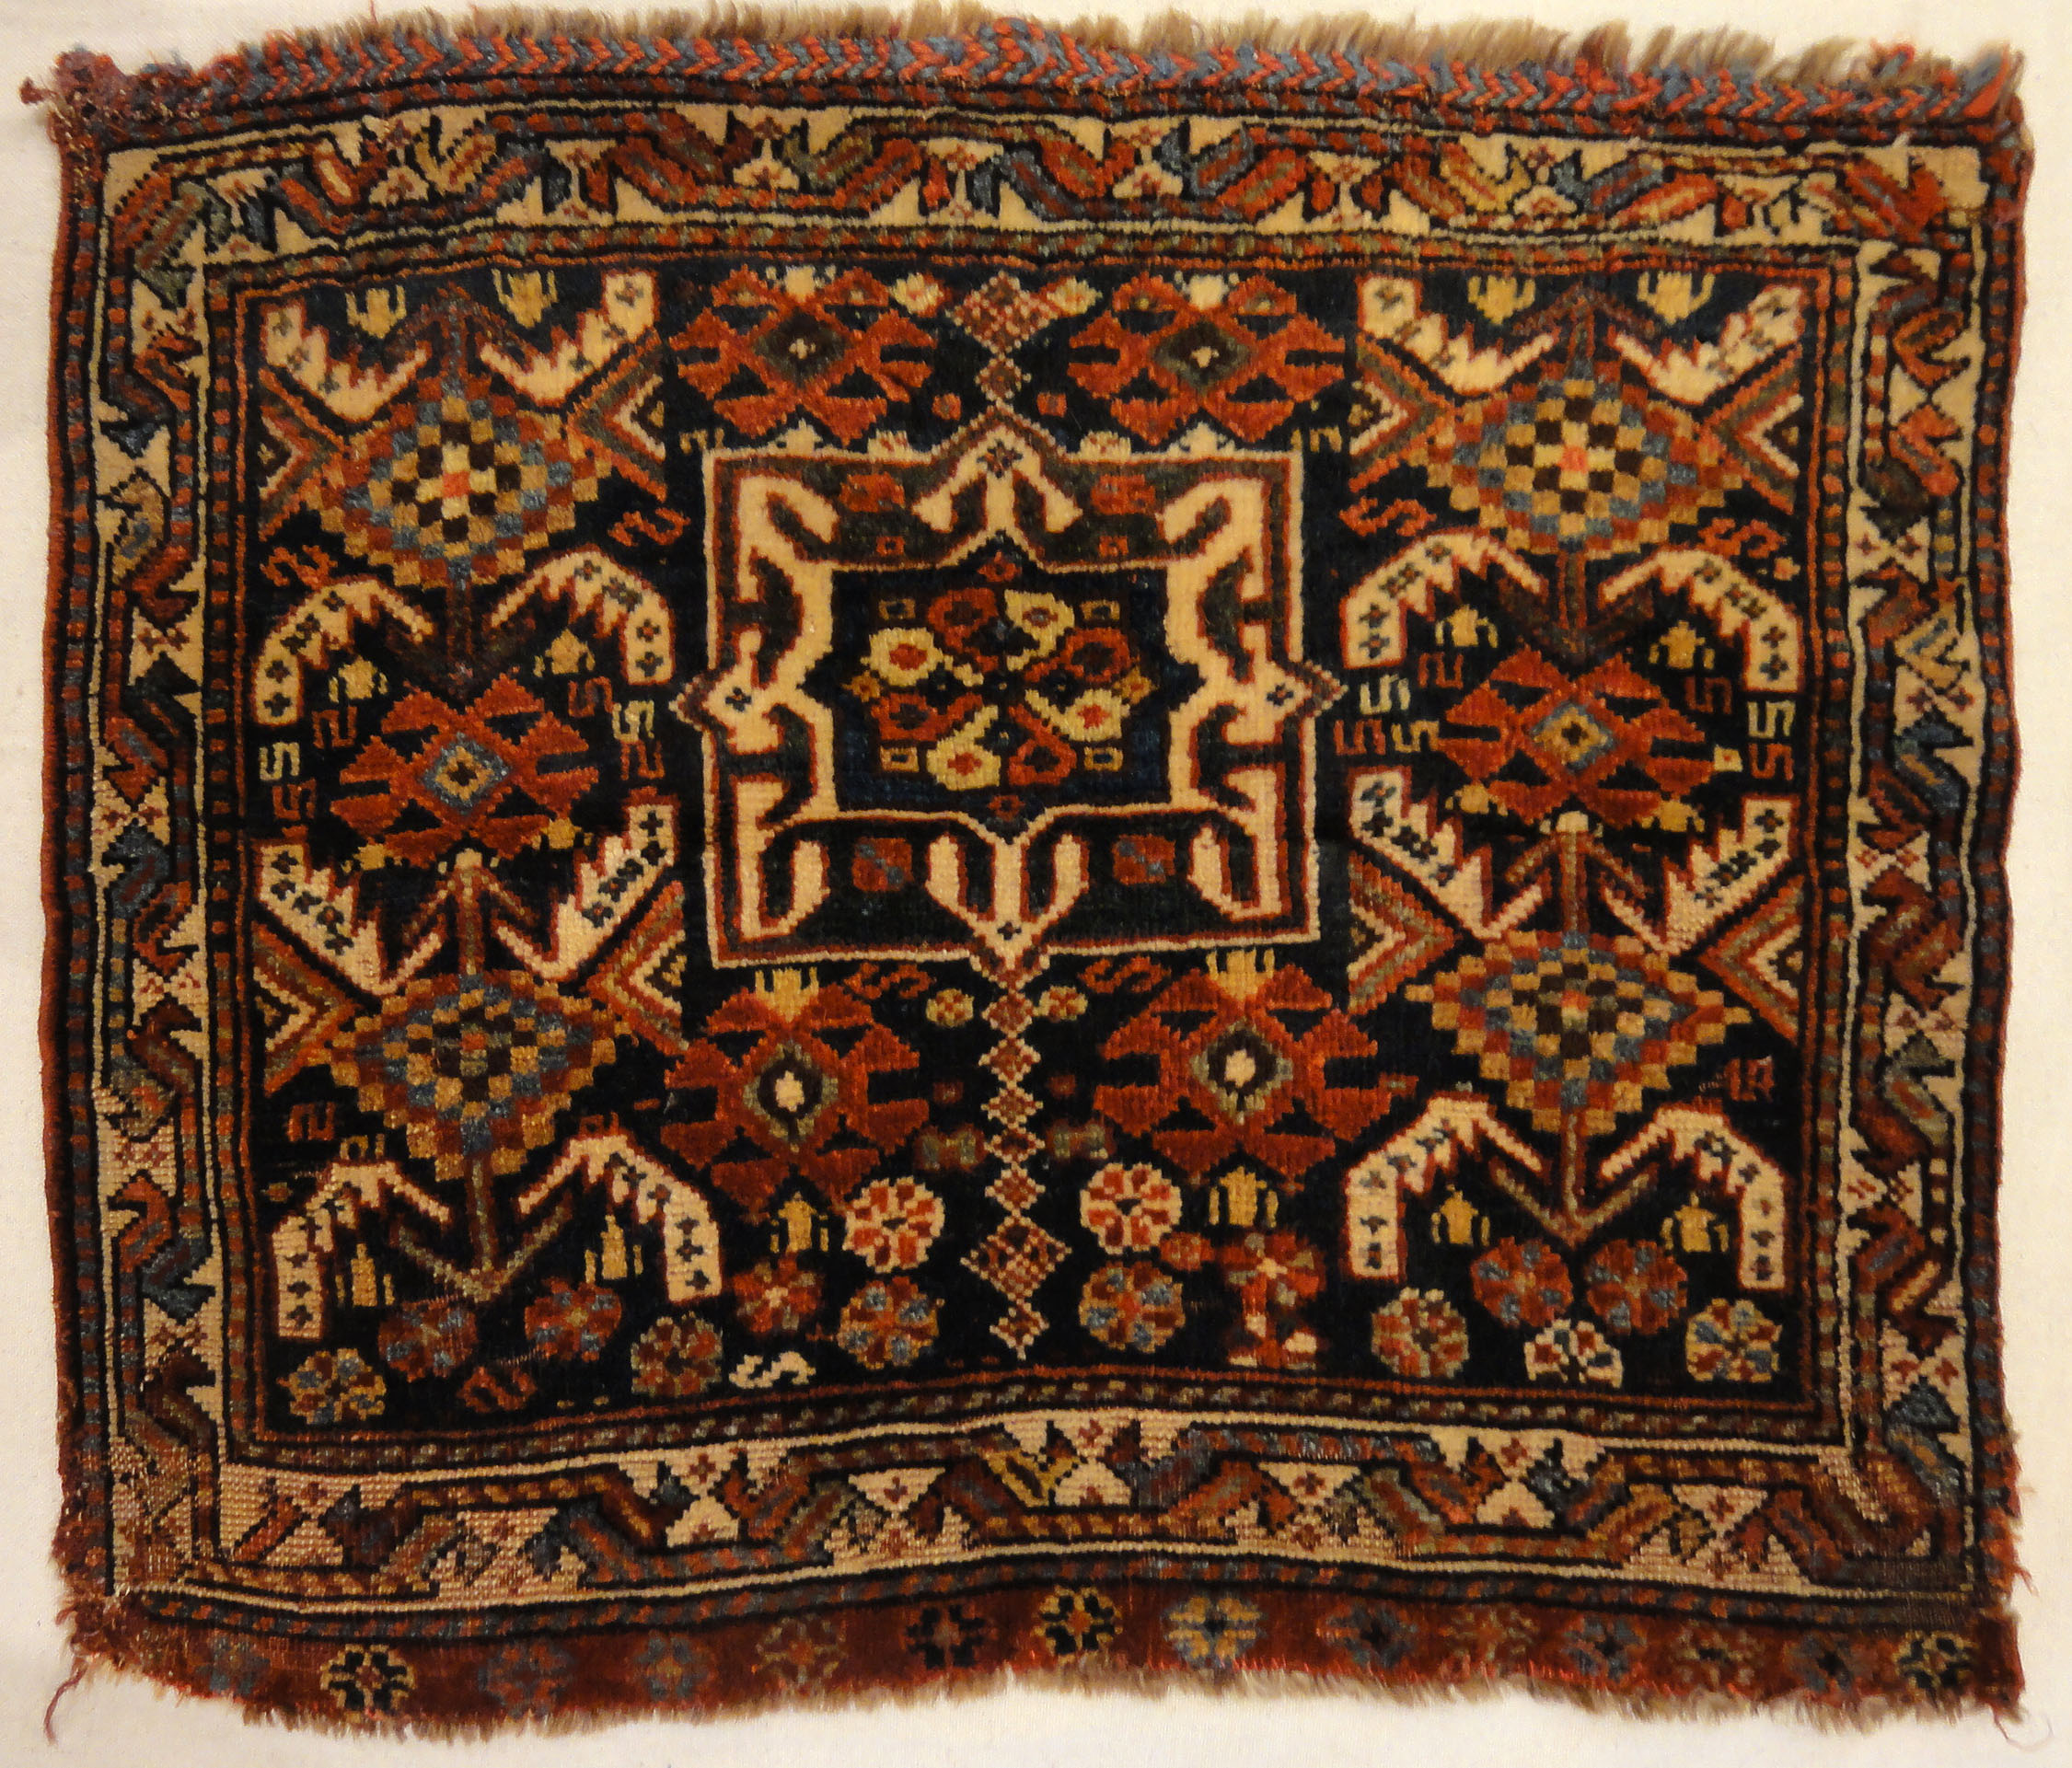 Antique Khamseh Southwest Persian Bagface. A piece of antique woven carpet art sold by Santa Barbara Design Center Rugs and More in Santa Barbara, CA.